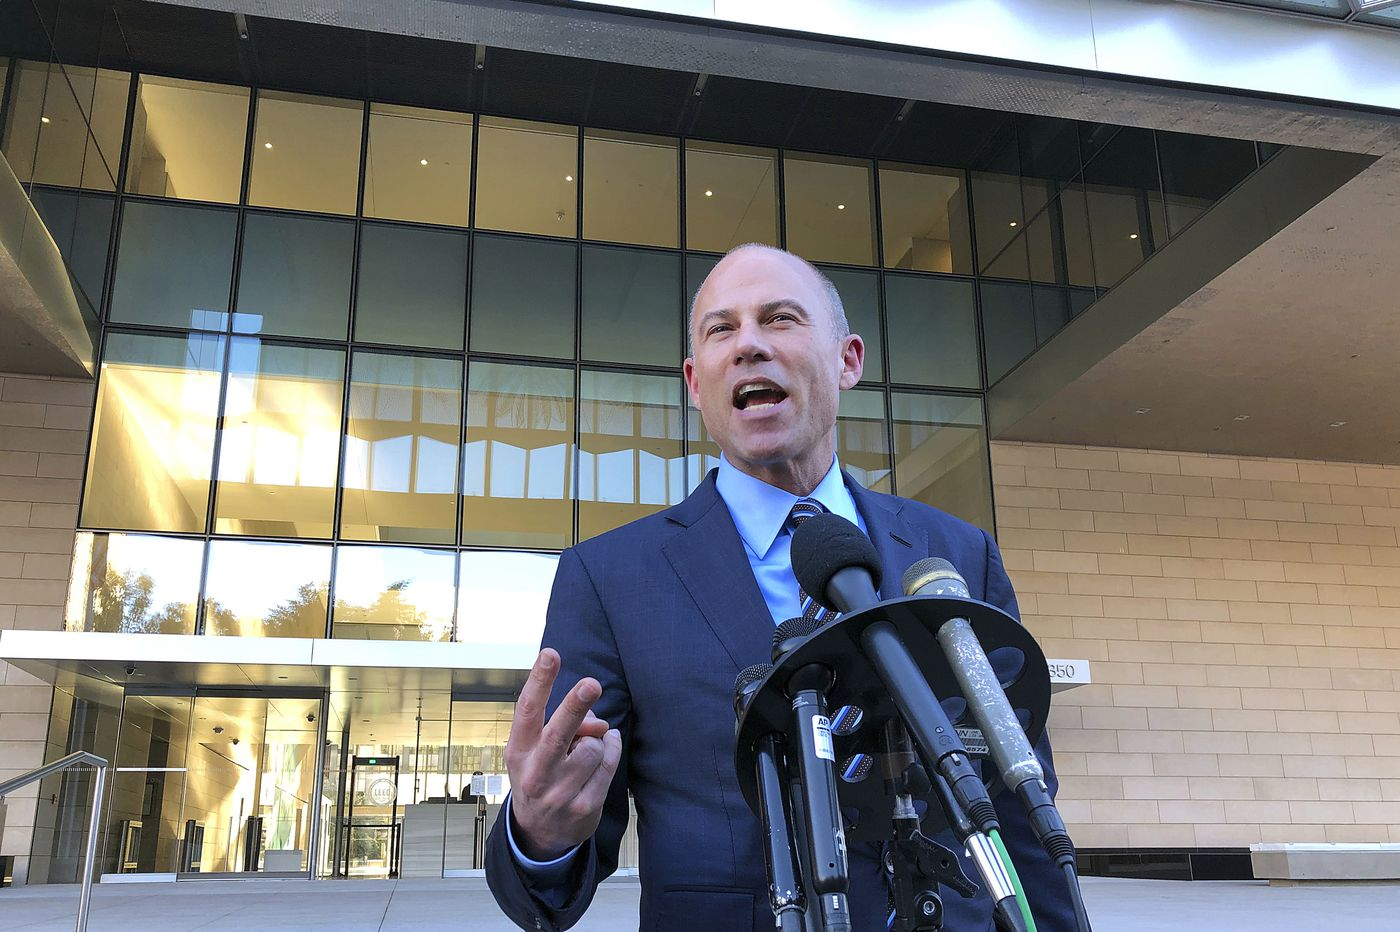 Judge transfers Avenatti's assets to estranged wife